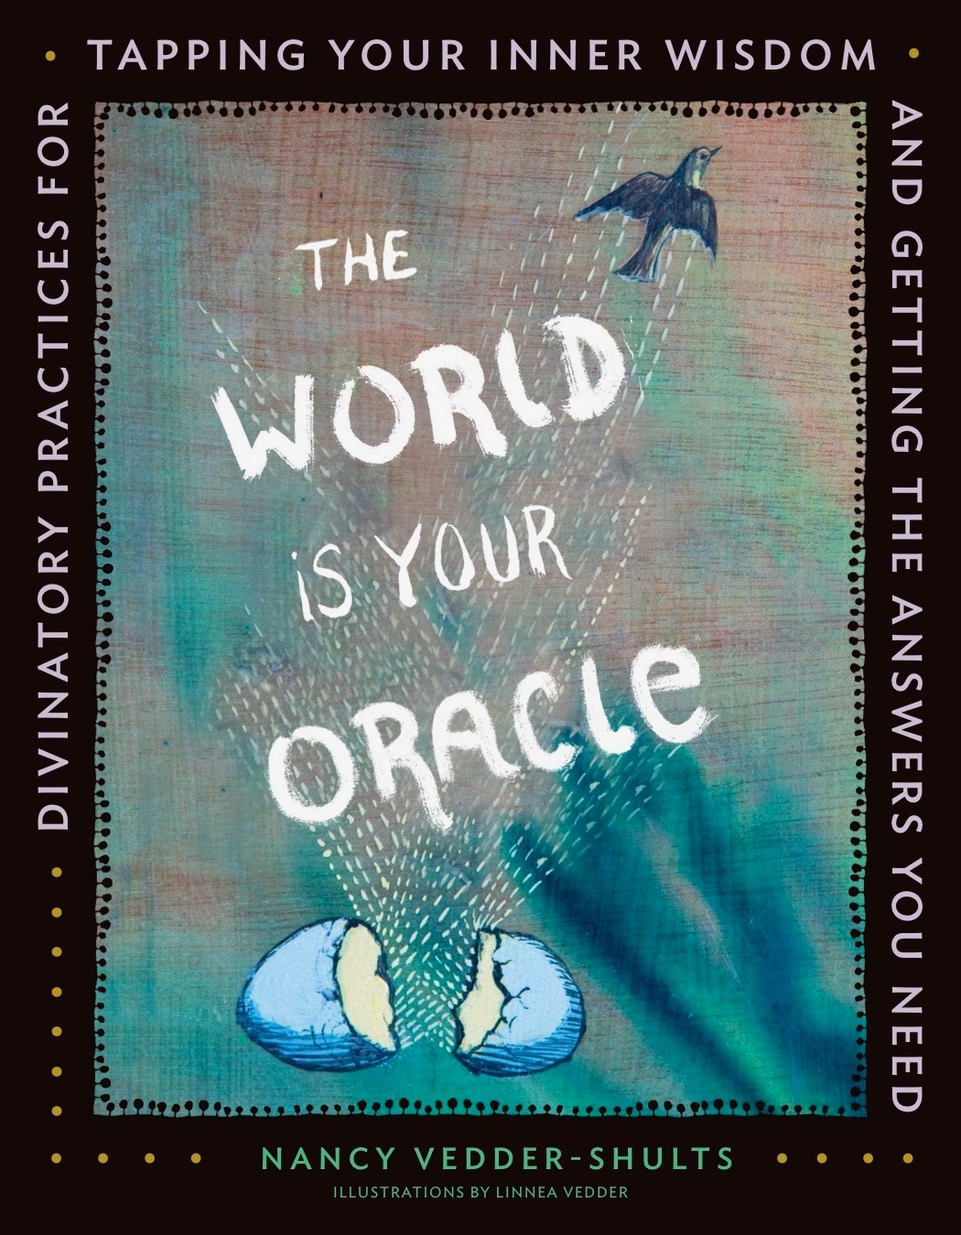 Book Cover World Your Oracle.jpeg